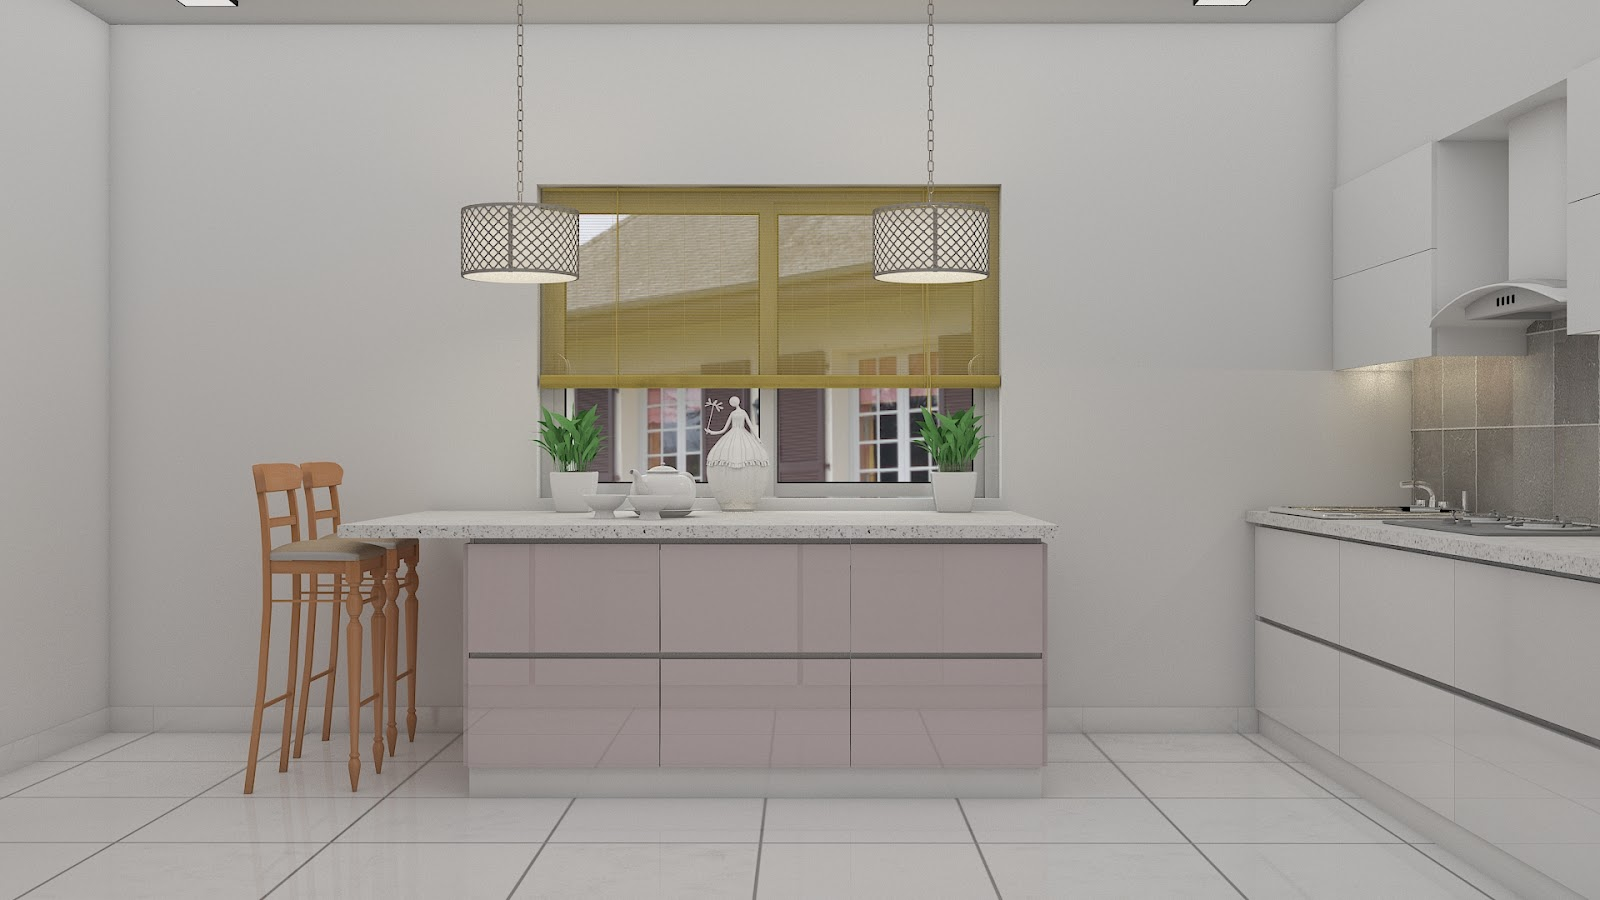 Island counter-top kitchen